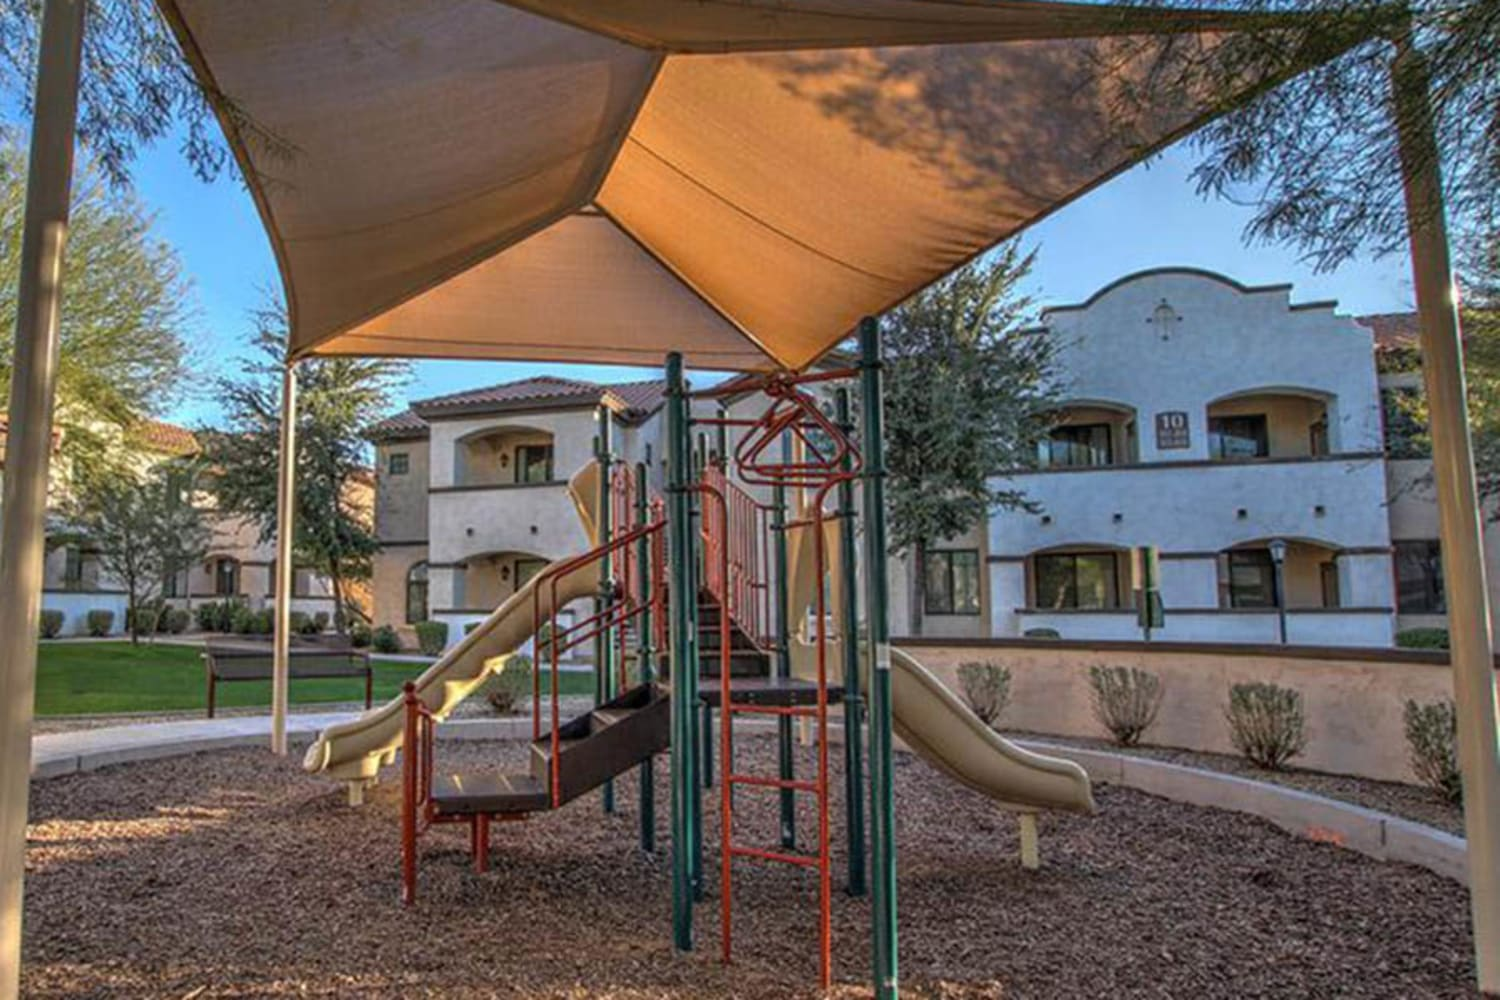 Dobson 2222 in Chandler, Arizona, offers a playground